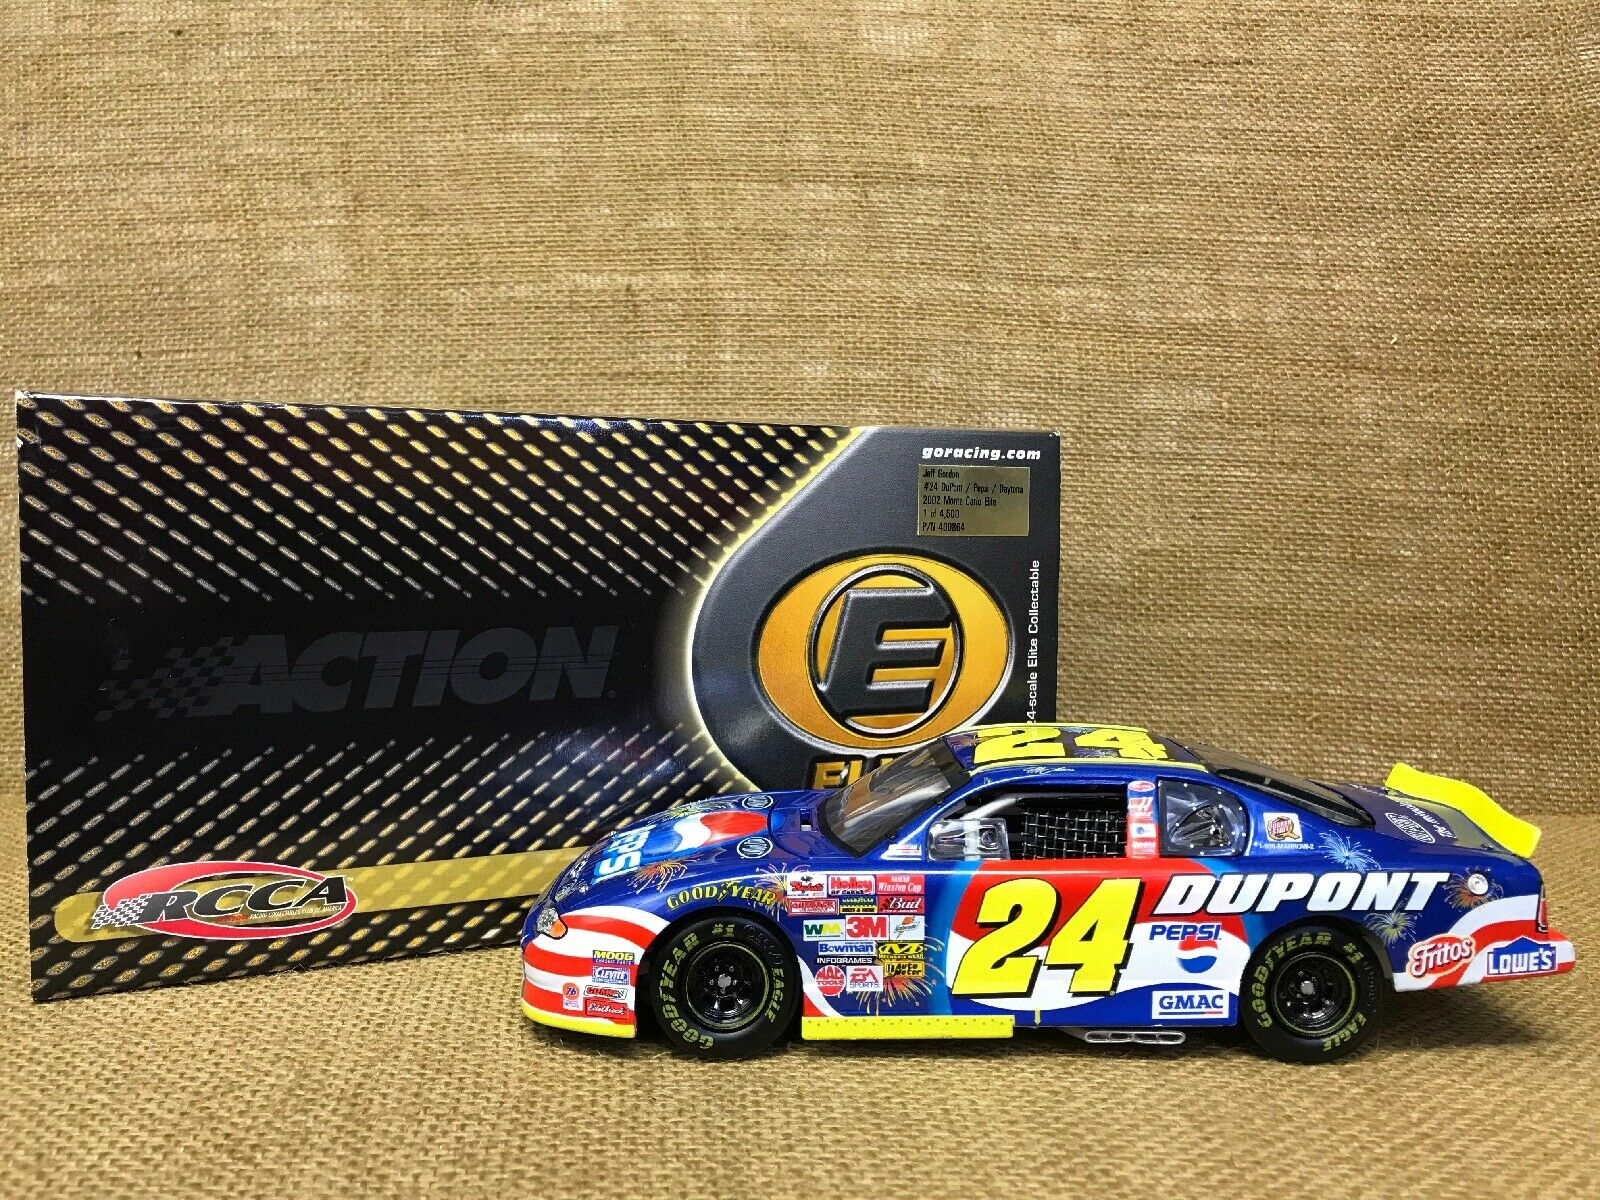 Action Elite 2002 NASCAR Dupont Pepsi Daytona Jeff Gordon Chevy Monte Carlo